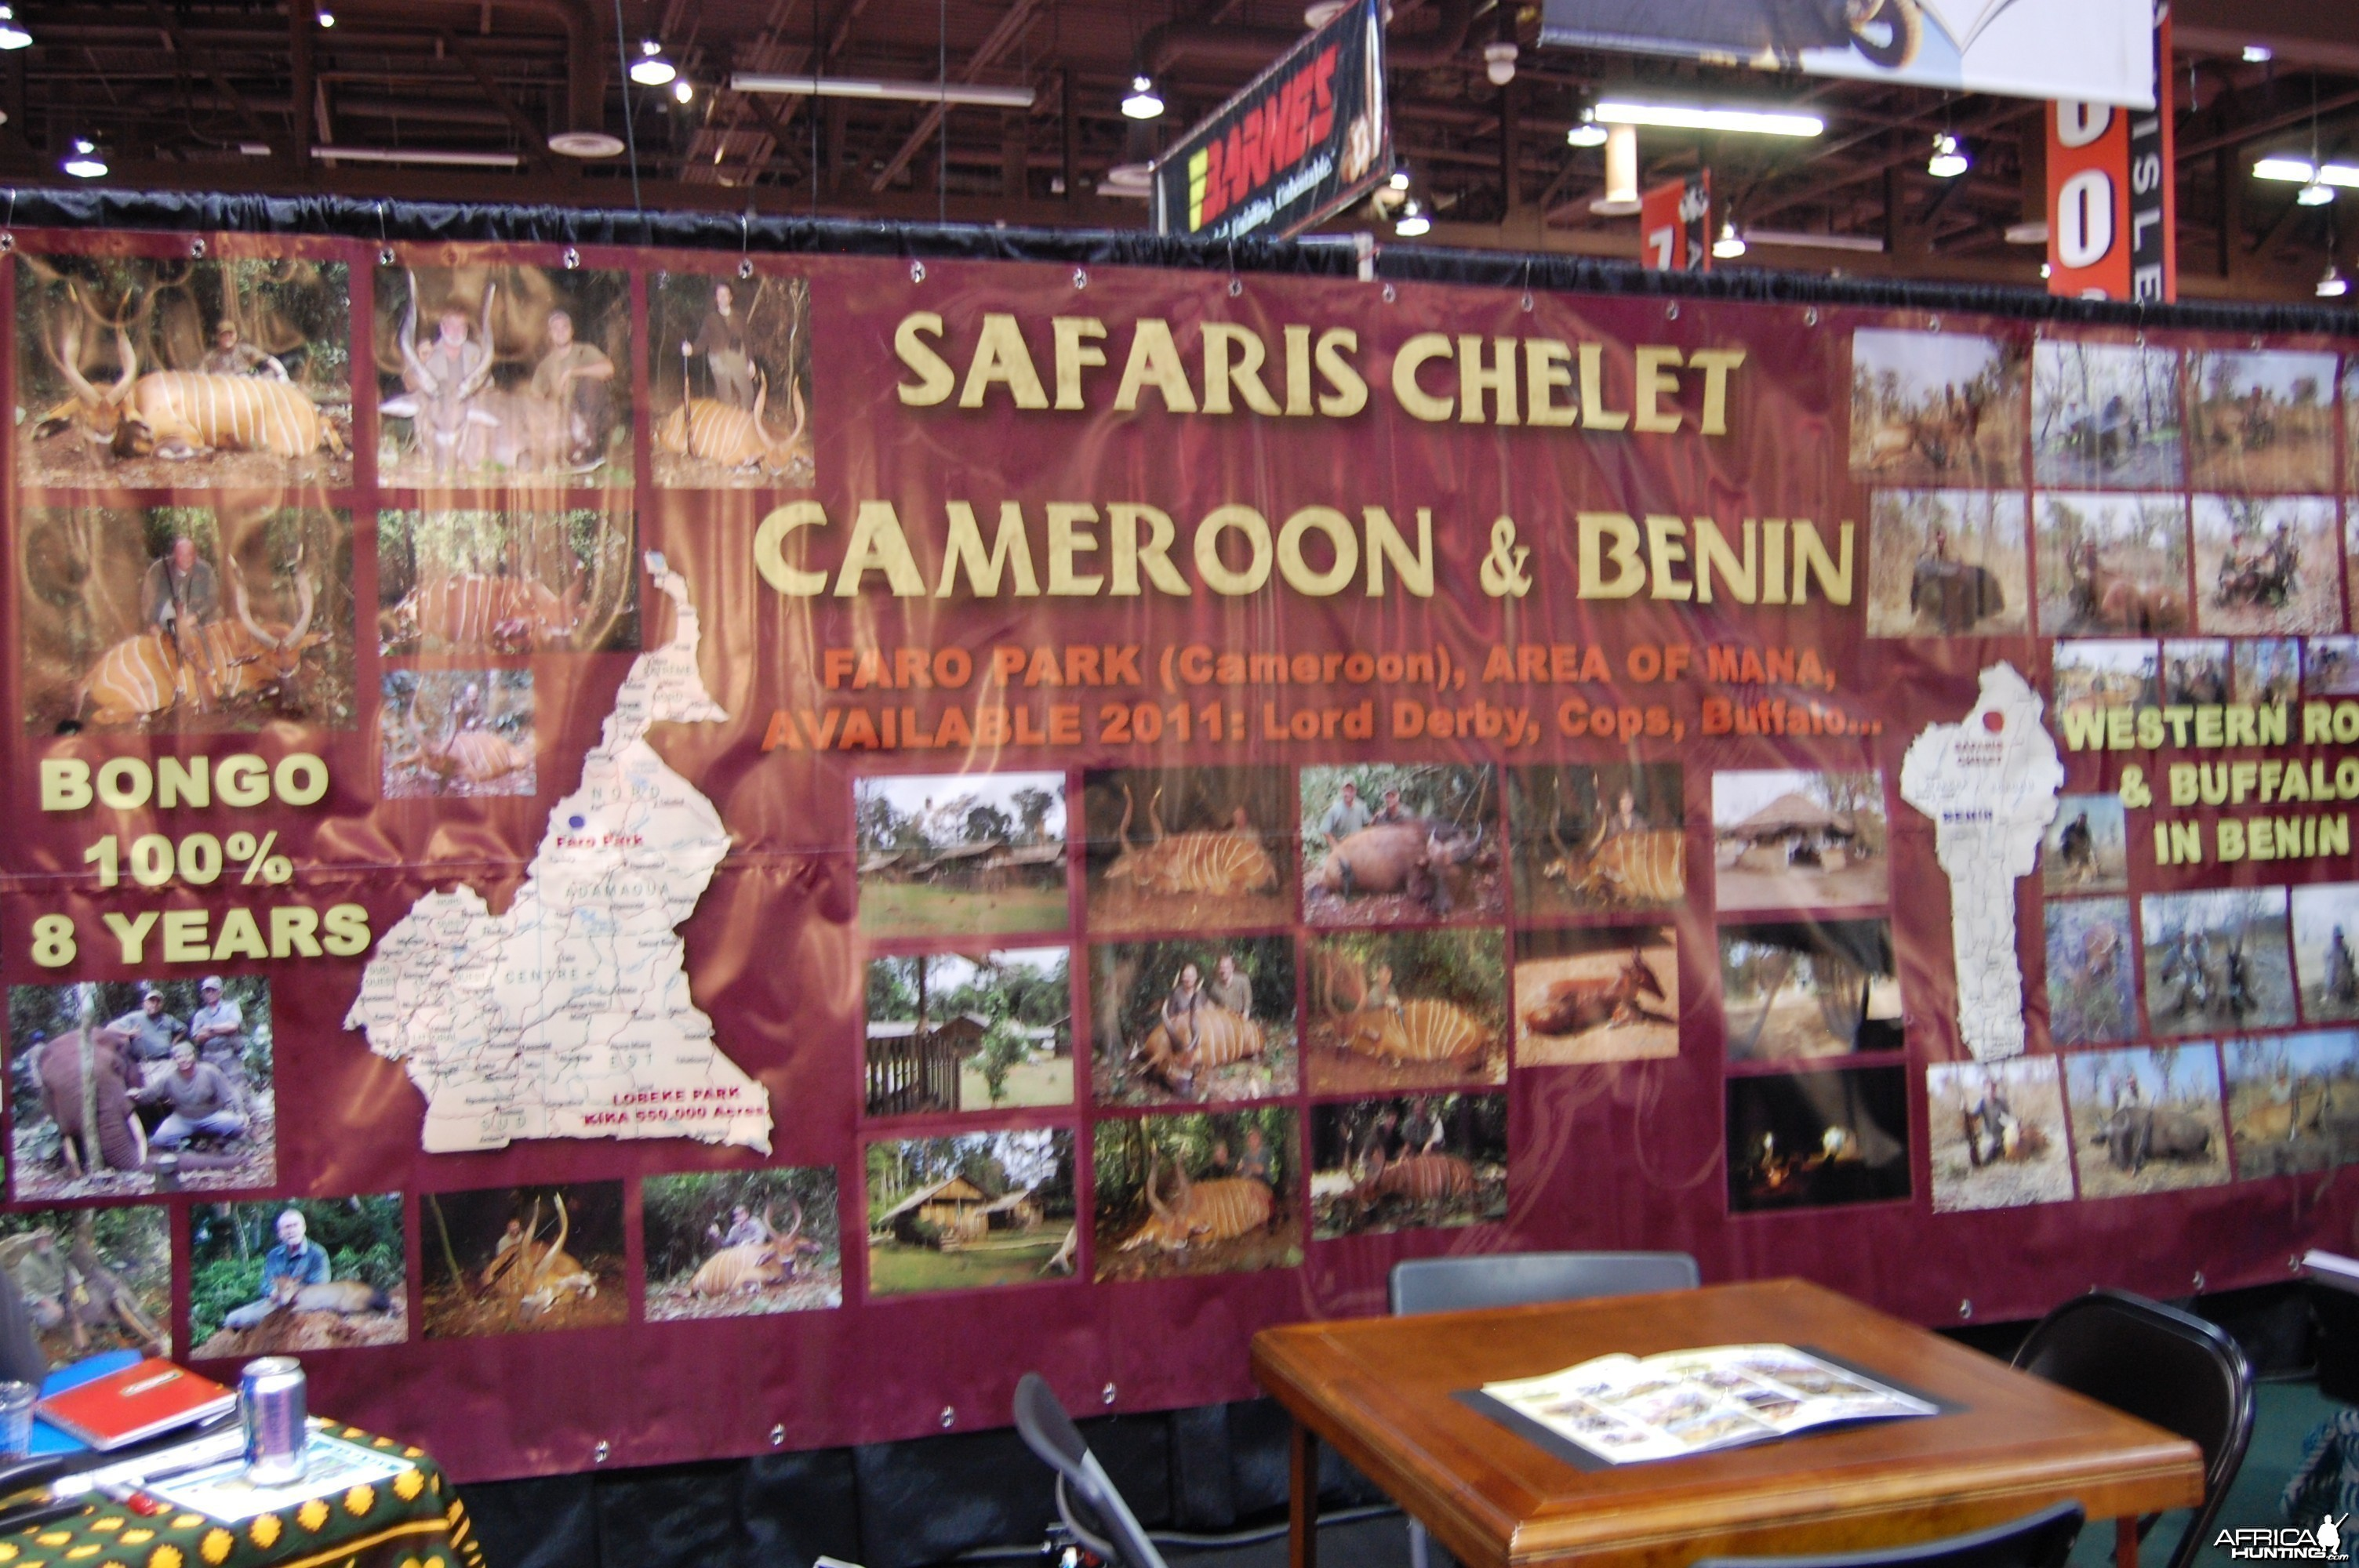 Safaris Chelet